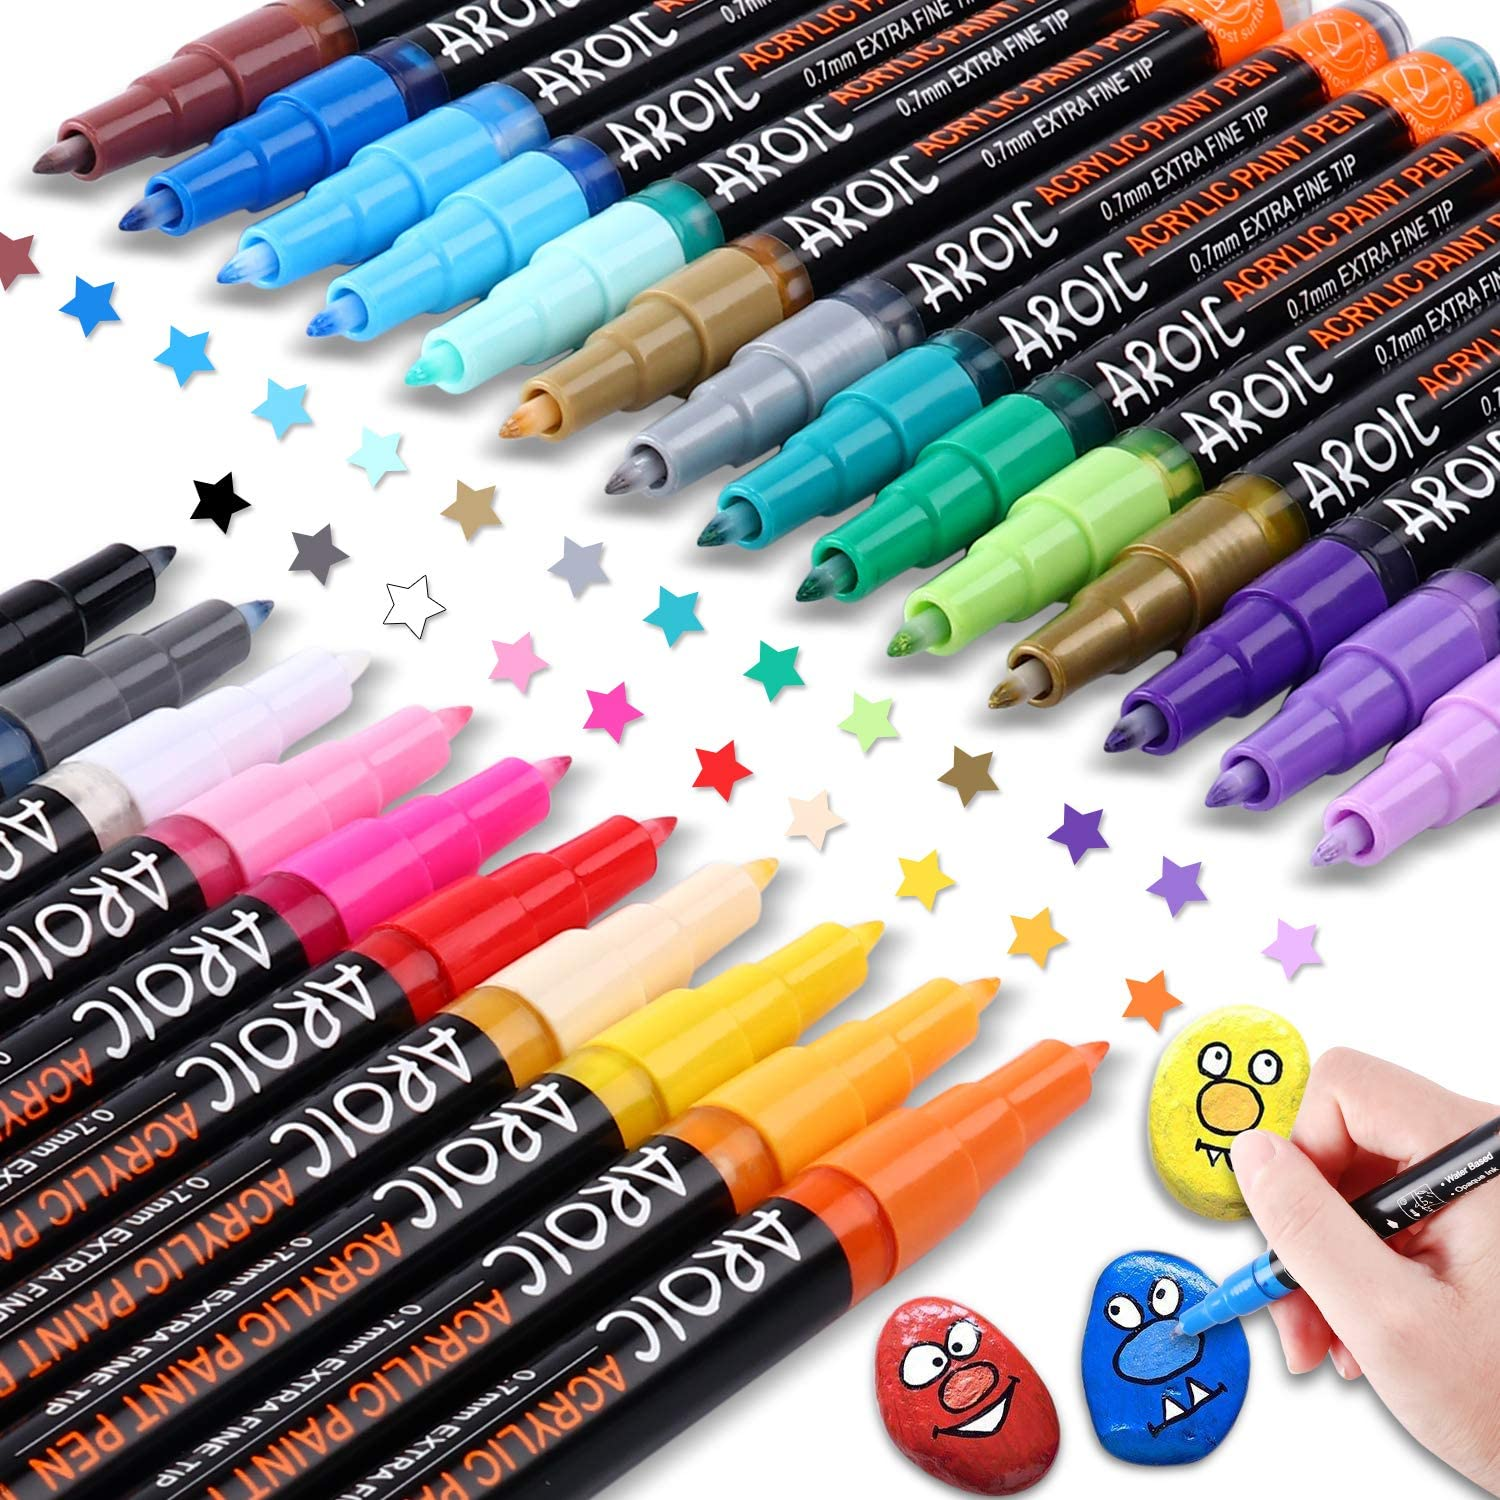 AROIC 24 Pack Acrylic Paint Pens for Rock - An On Attention brand Write In stock Painting